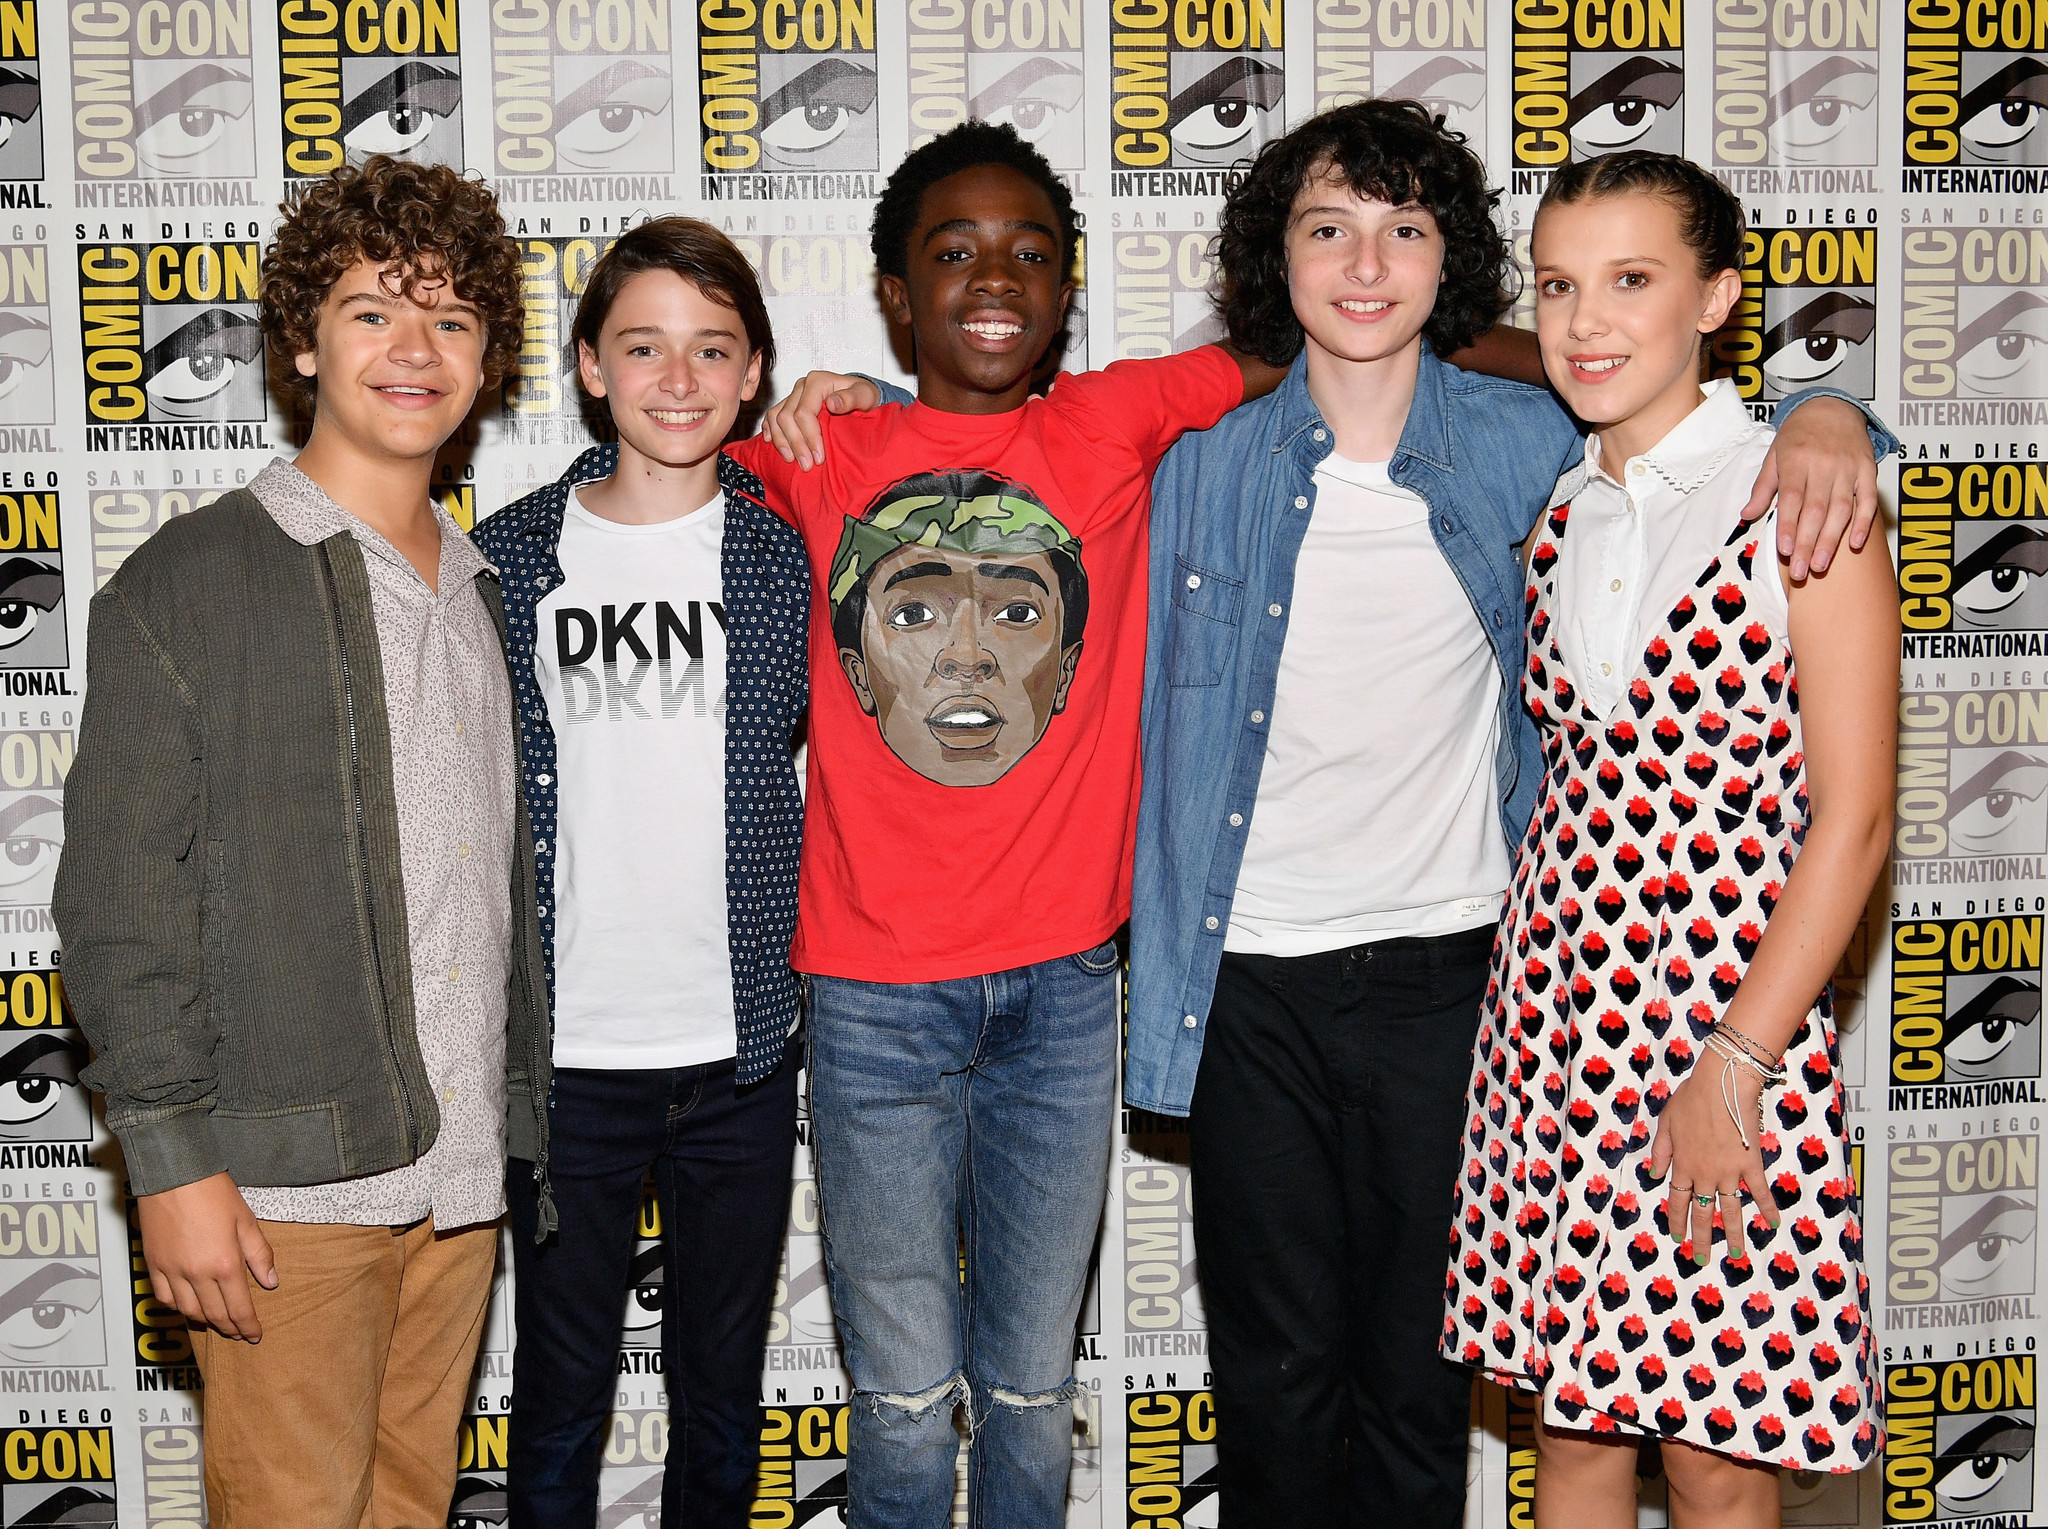 Watch the young cast members of stranger things react to their netflixs new aftershow for their hit series stranger things has brought to light some interesting revelations about the cast and crew from where the m4hsunfo